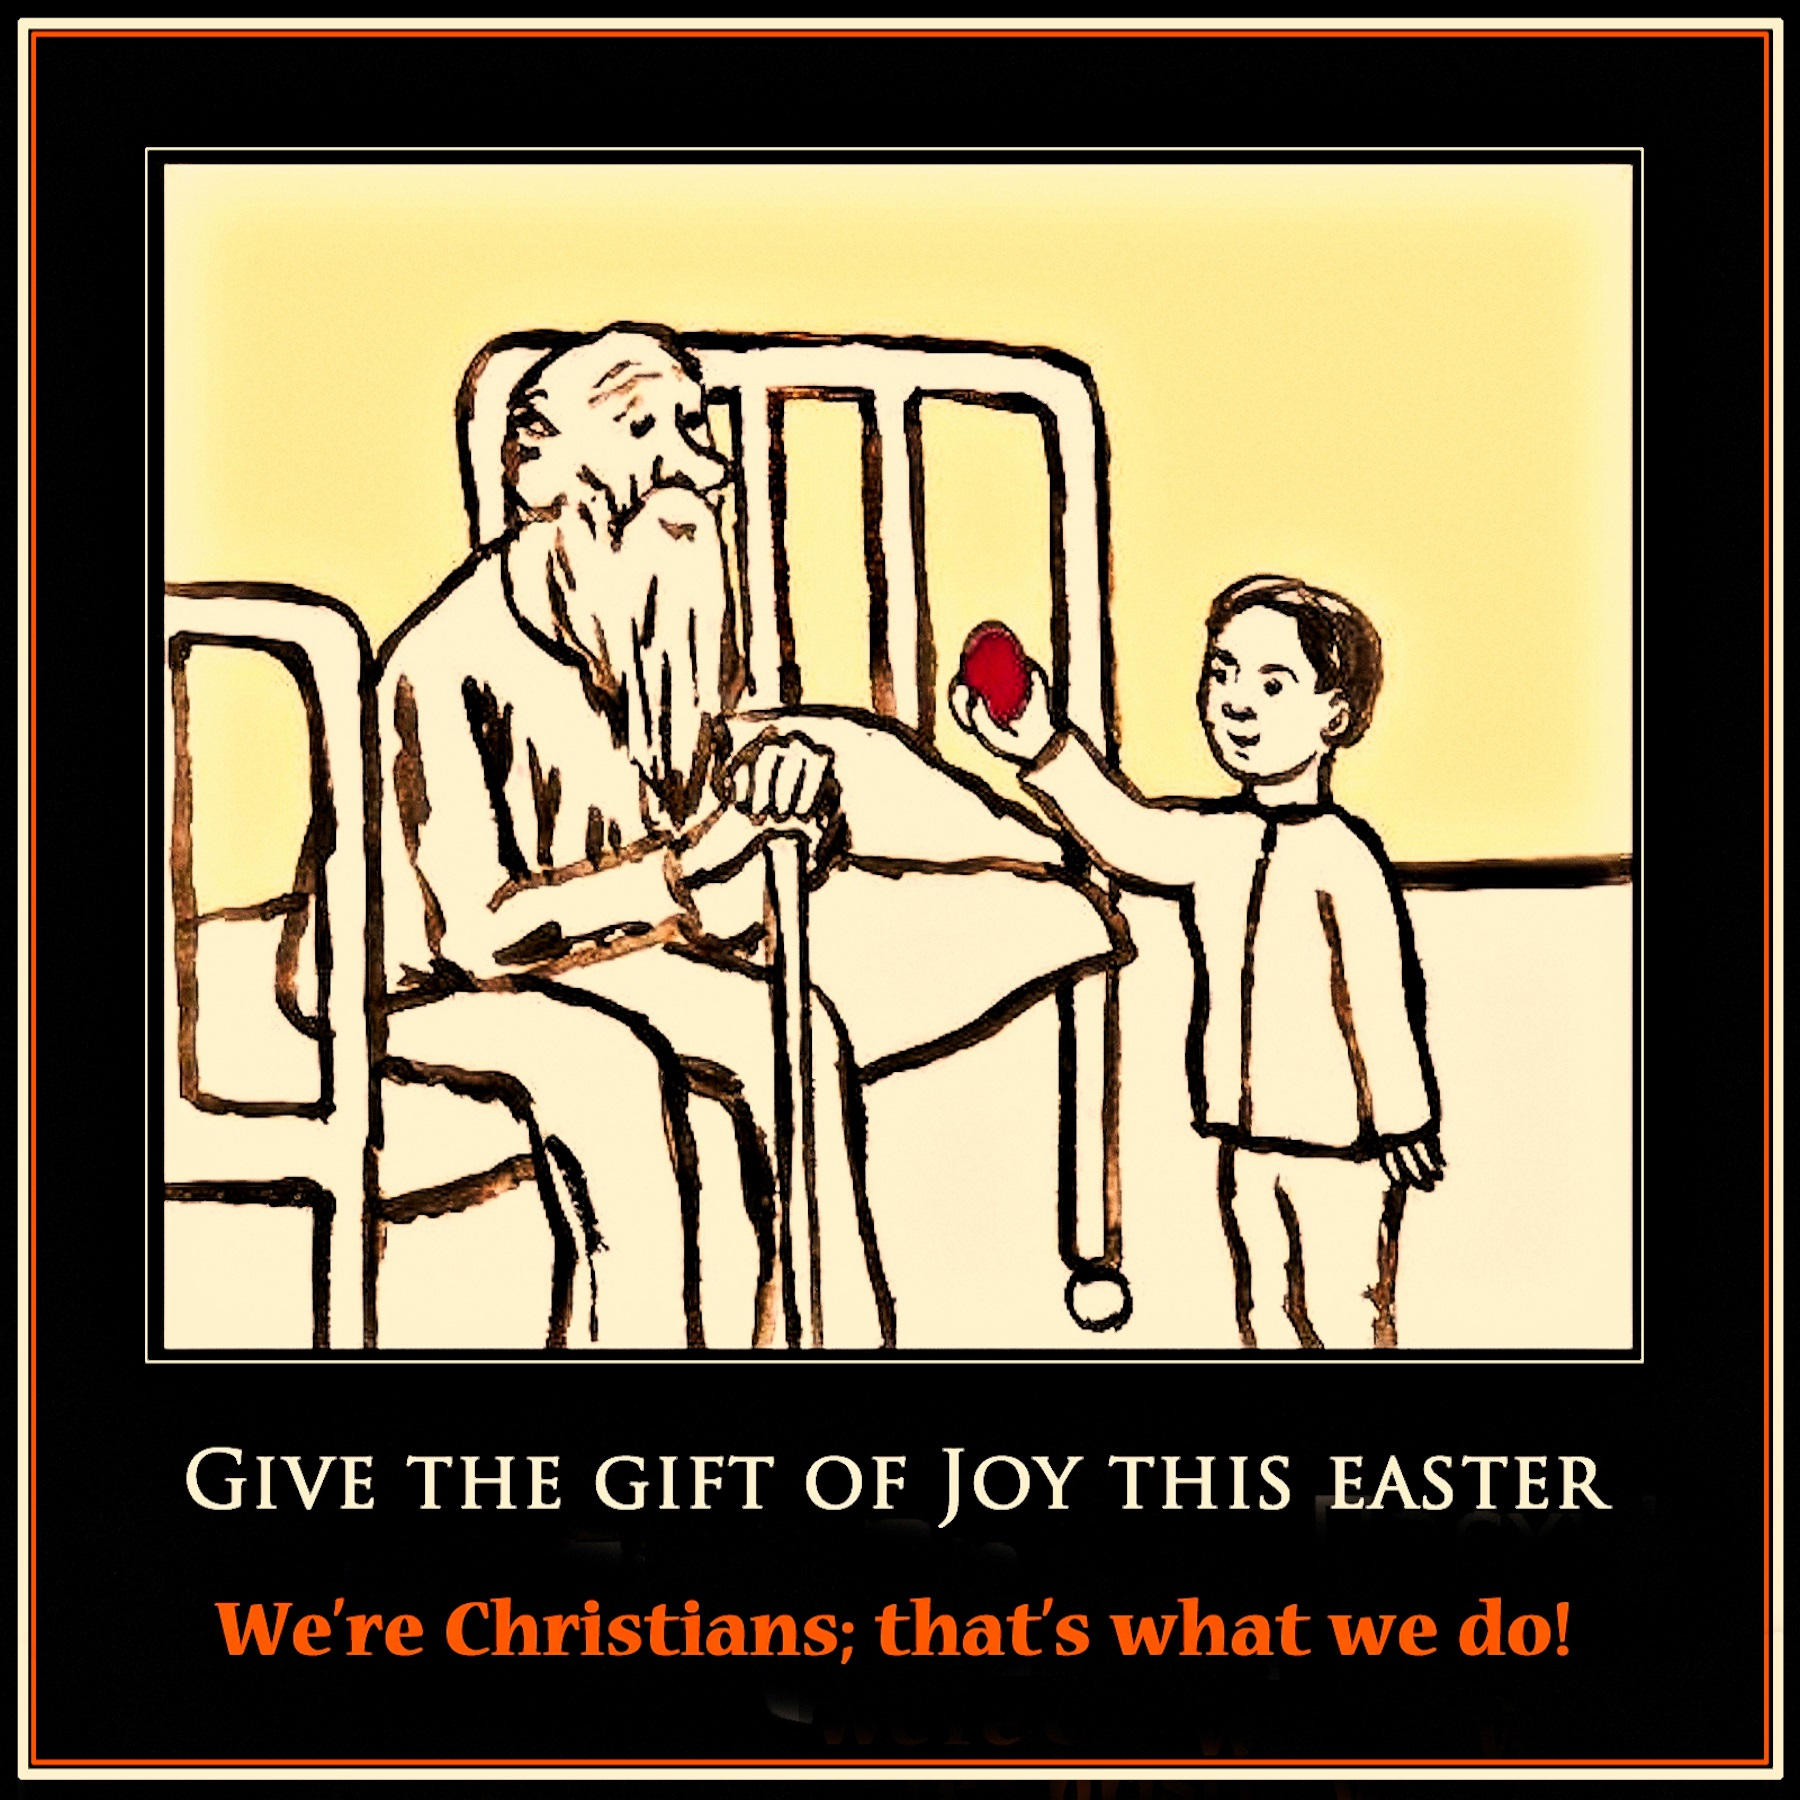 00 give the gift of joy this easter! 140416